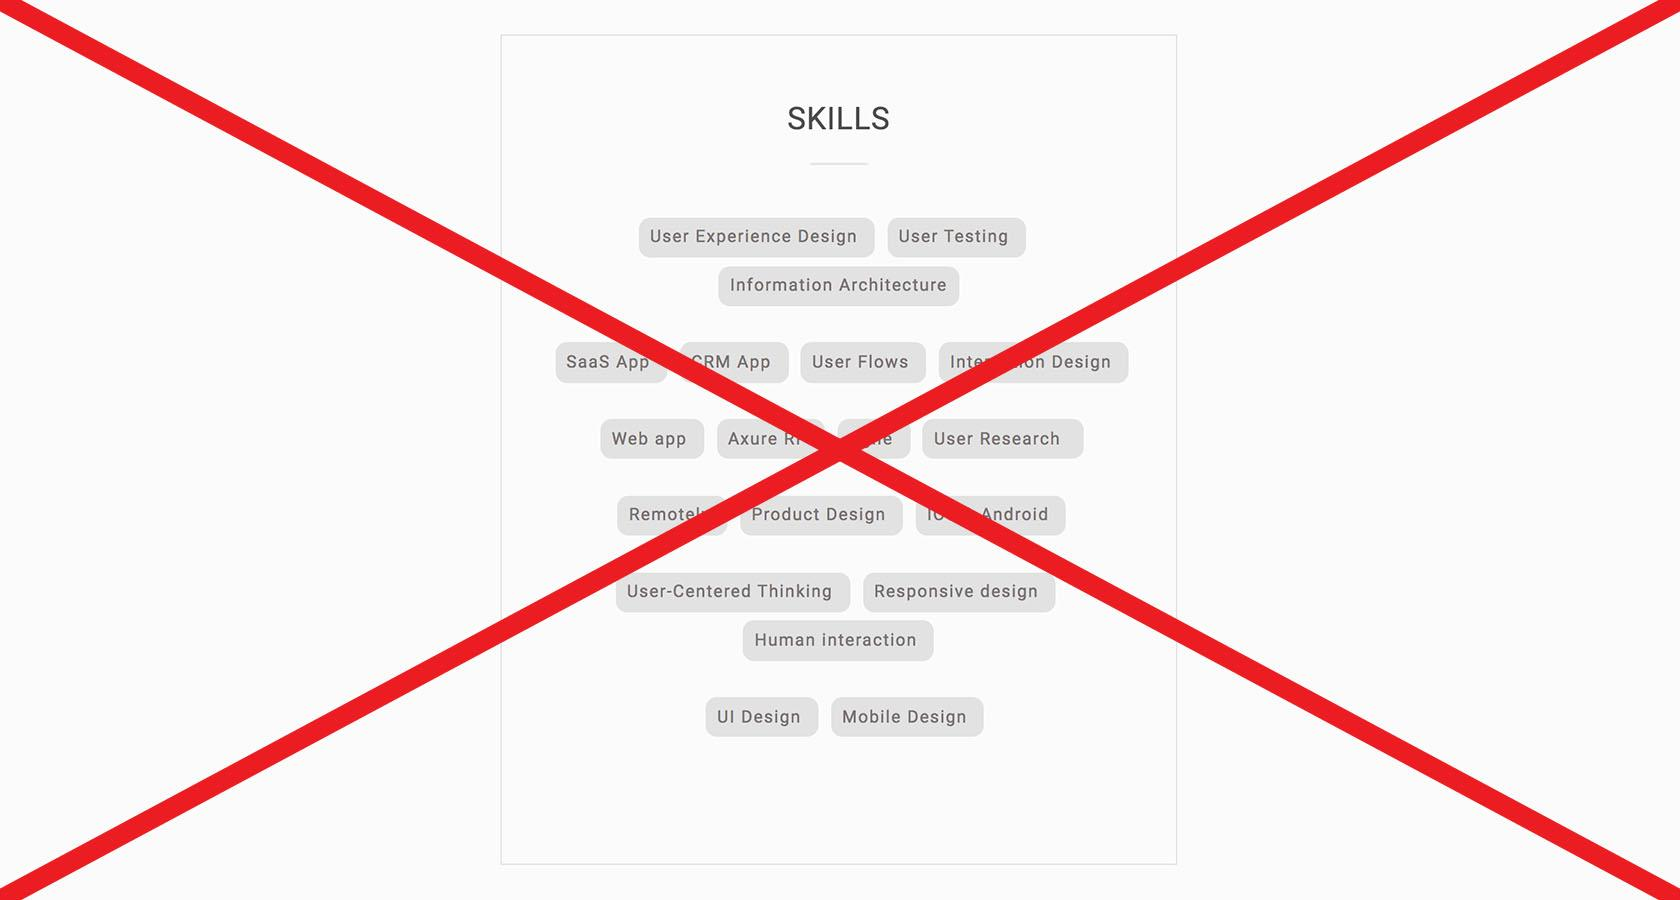 UX design skills and portfolio best practices